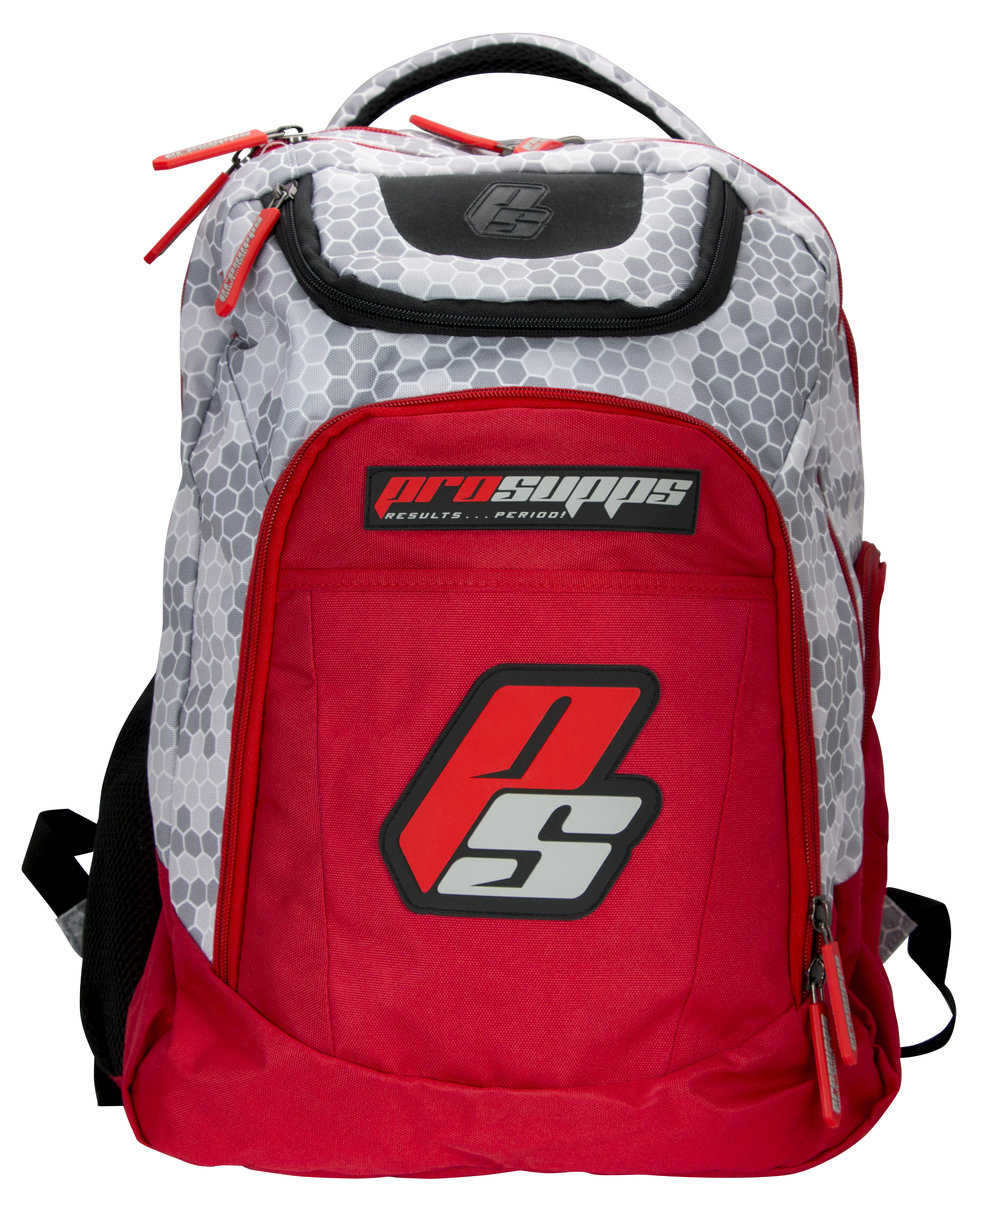 ProSupps Hex Backpack.jpg